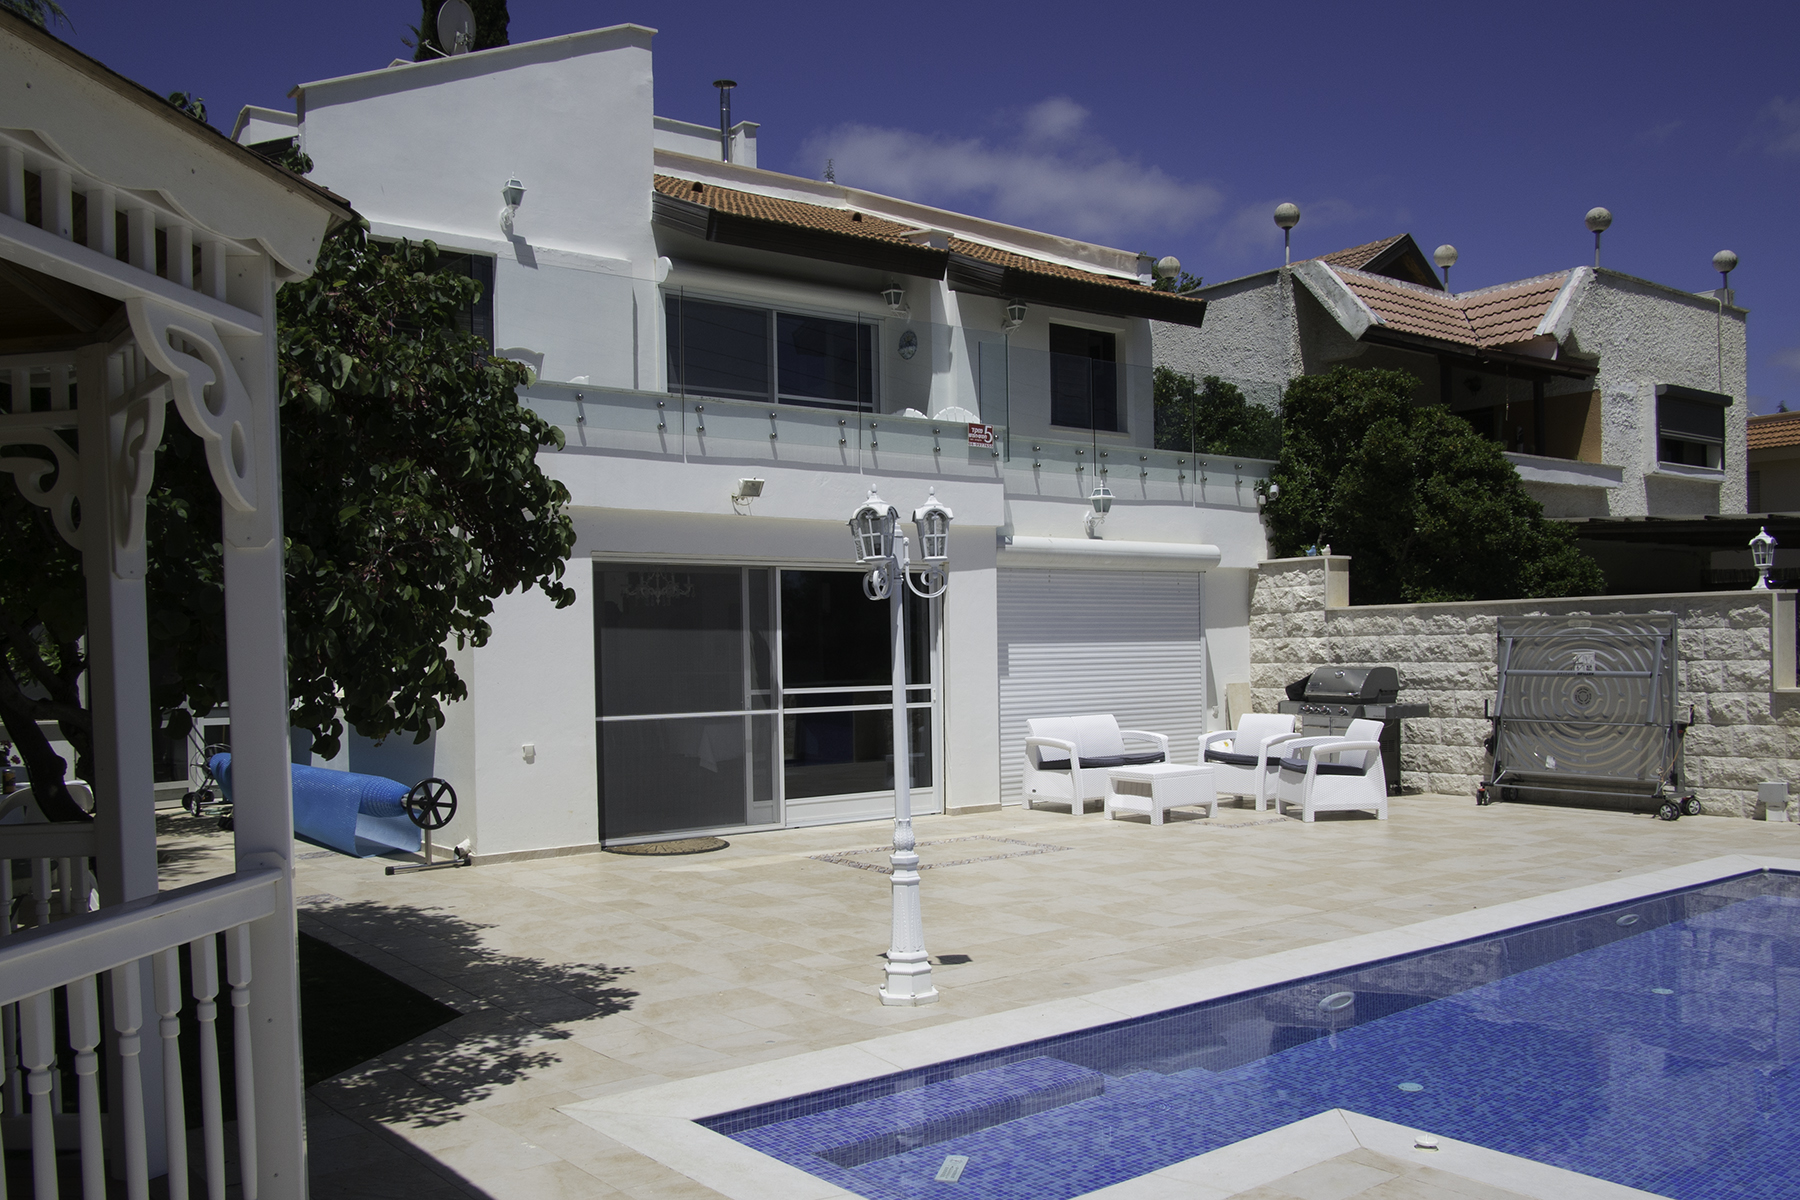 Kfar Vradim Israel  city images : ... kfar vradim private pools are considered the ultimate luxury in israel